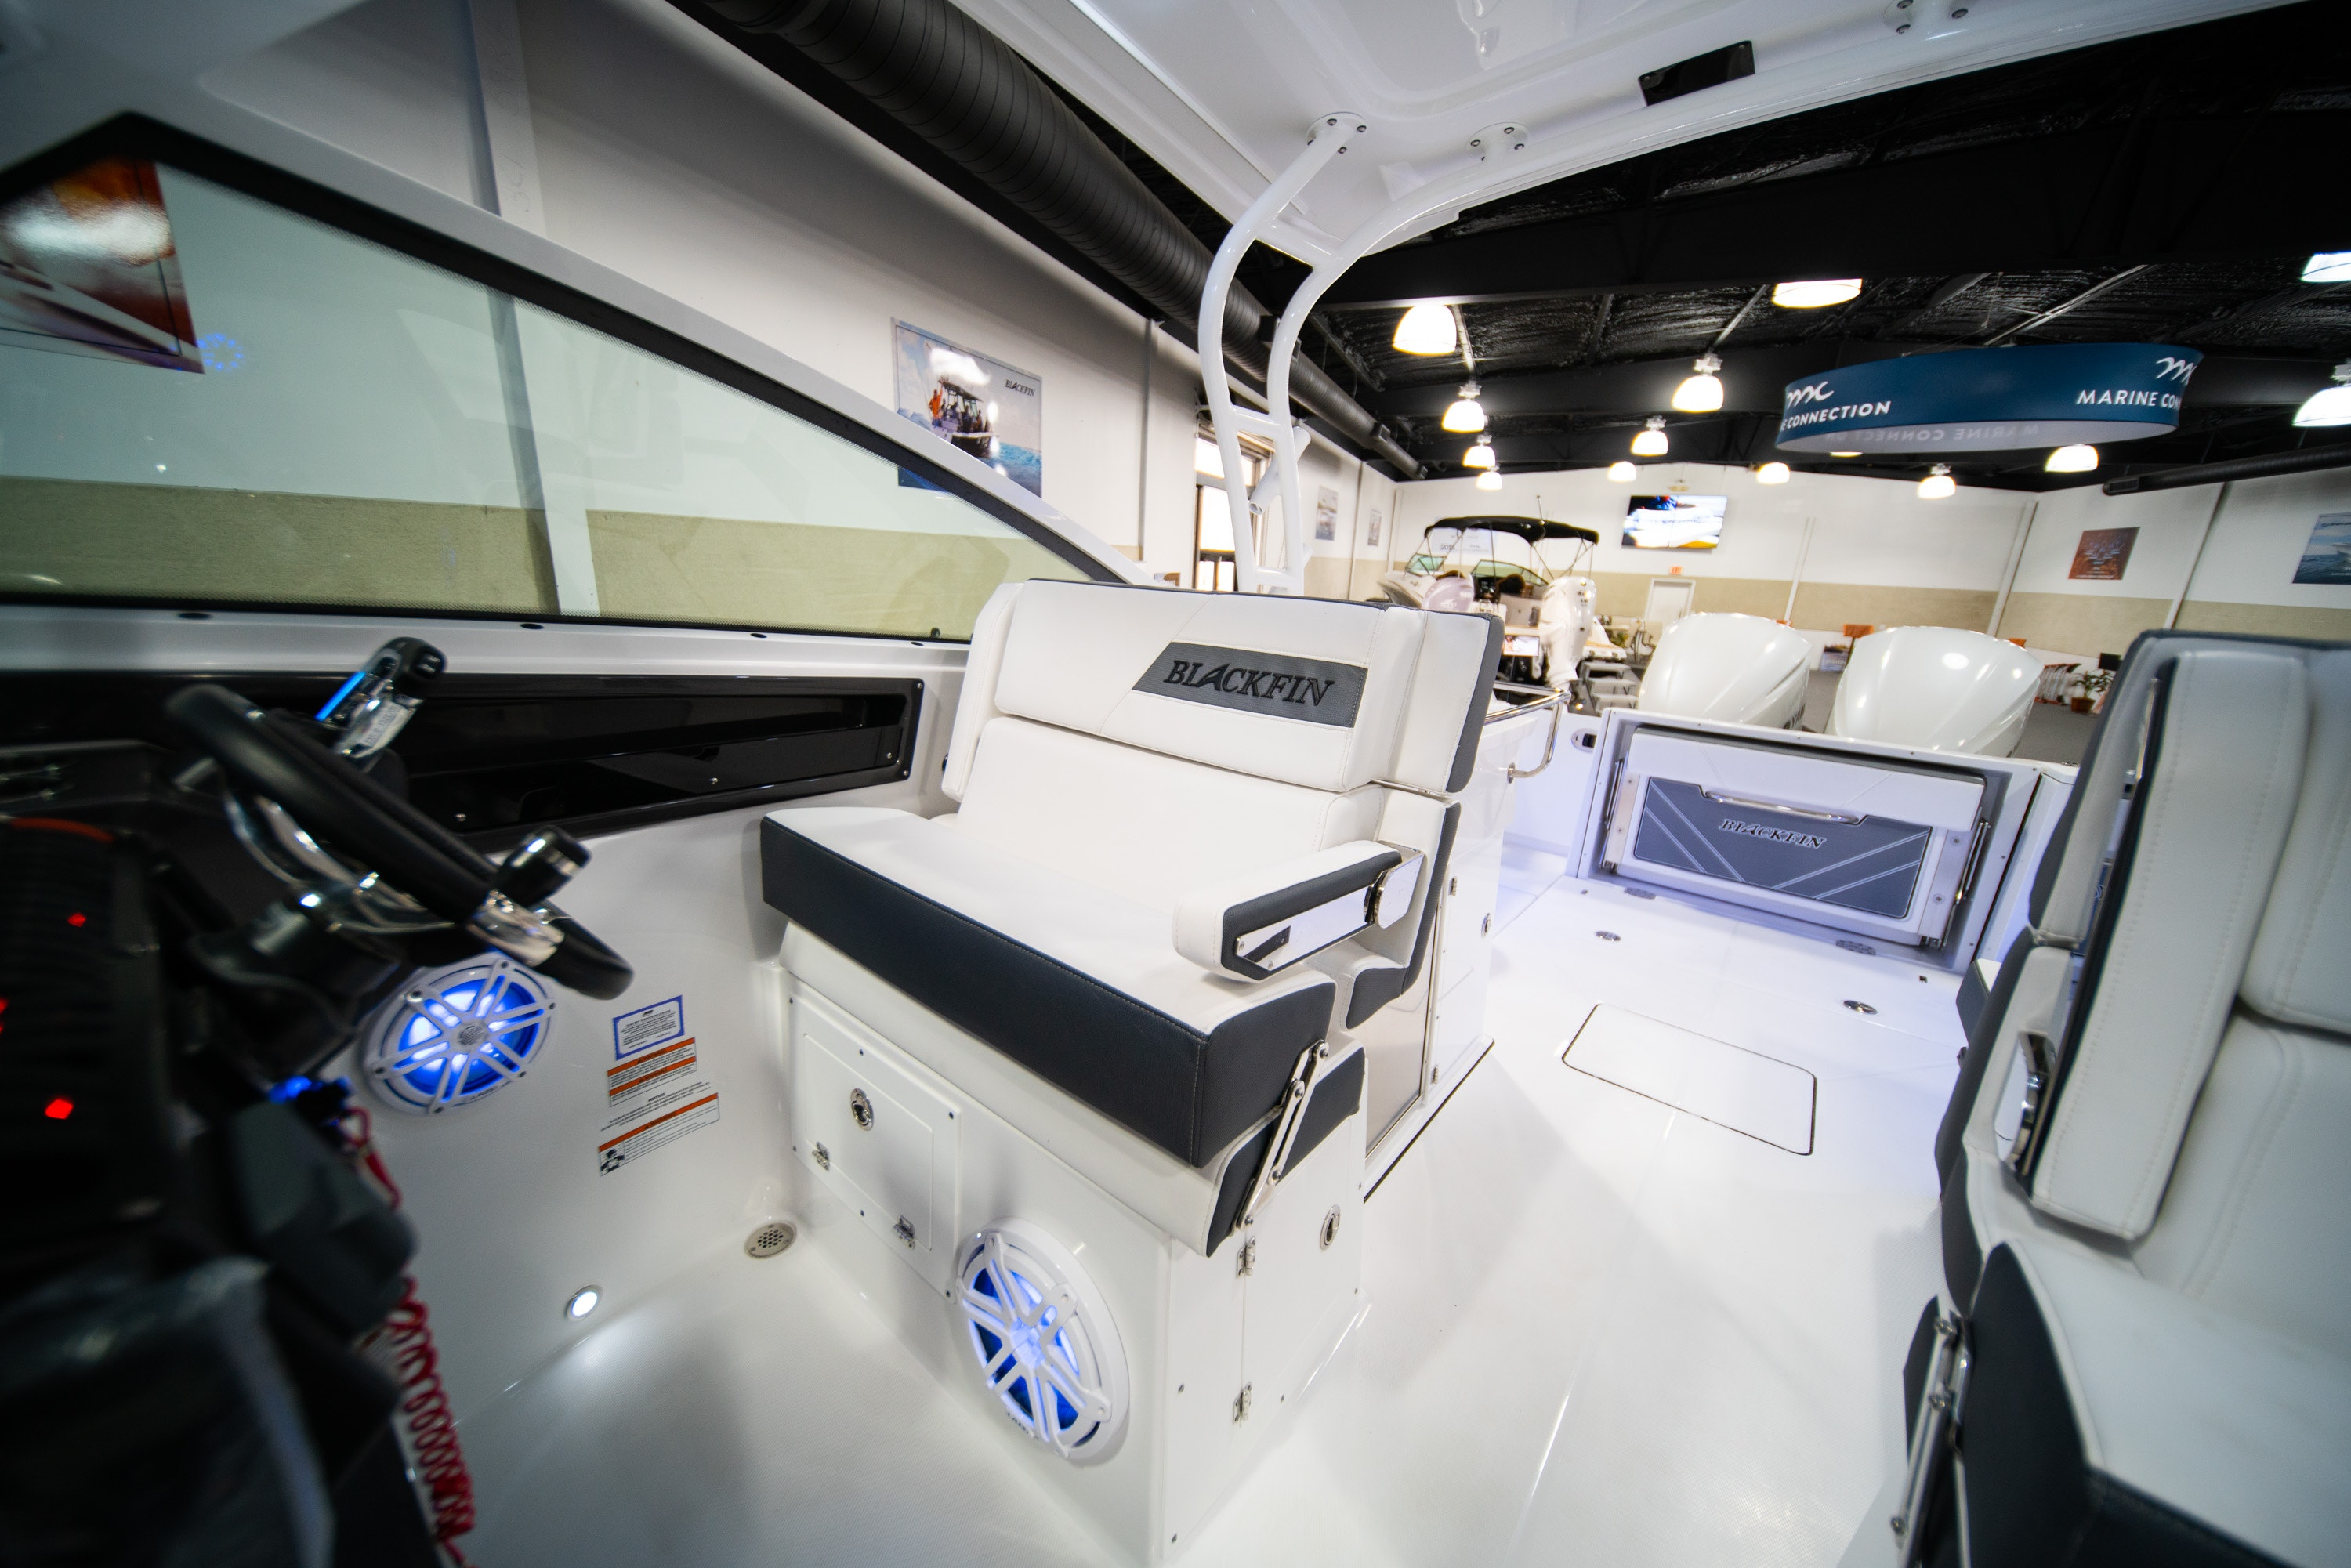 Thumbnail 28 for New 2020 Blackfin 272DC boat for sale in West Palm Beach, FL